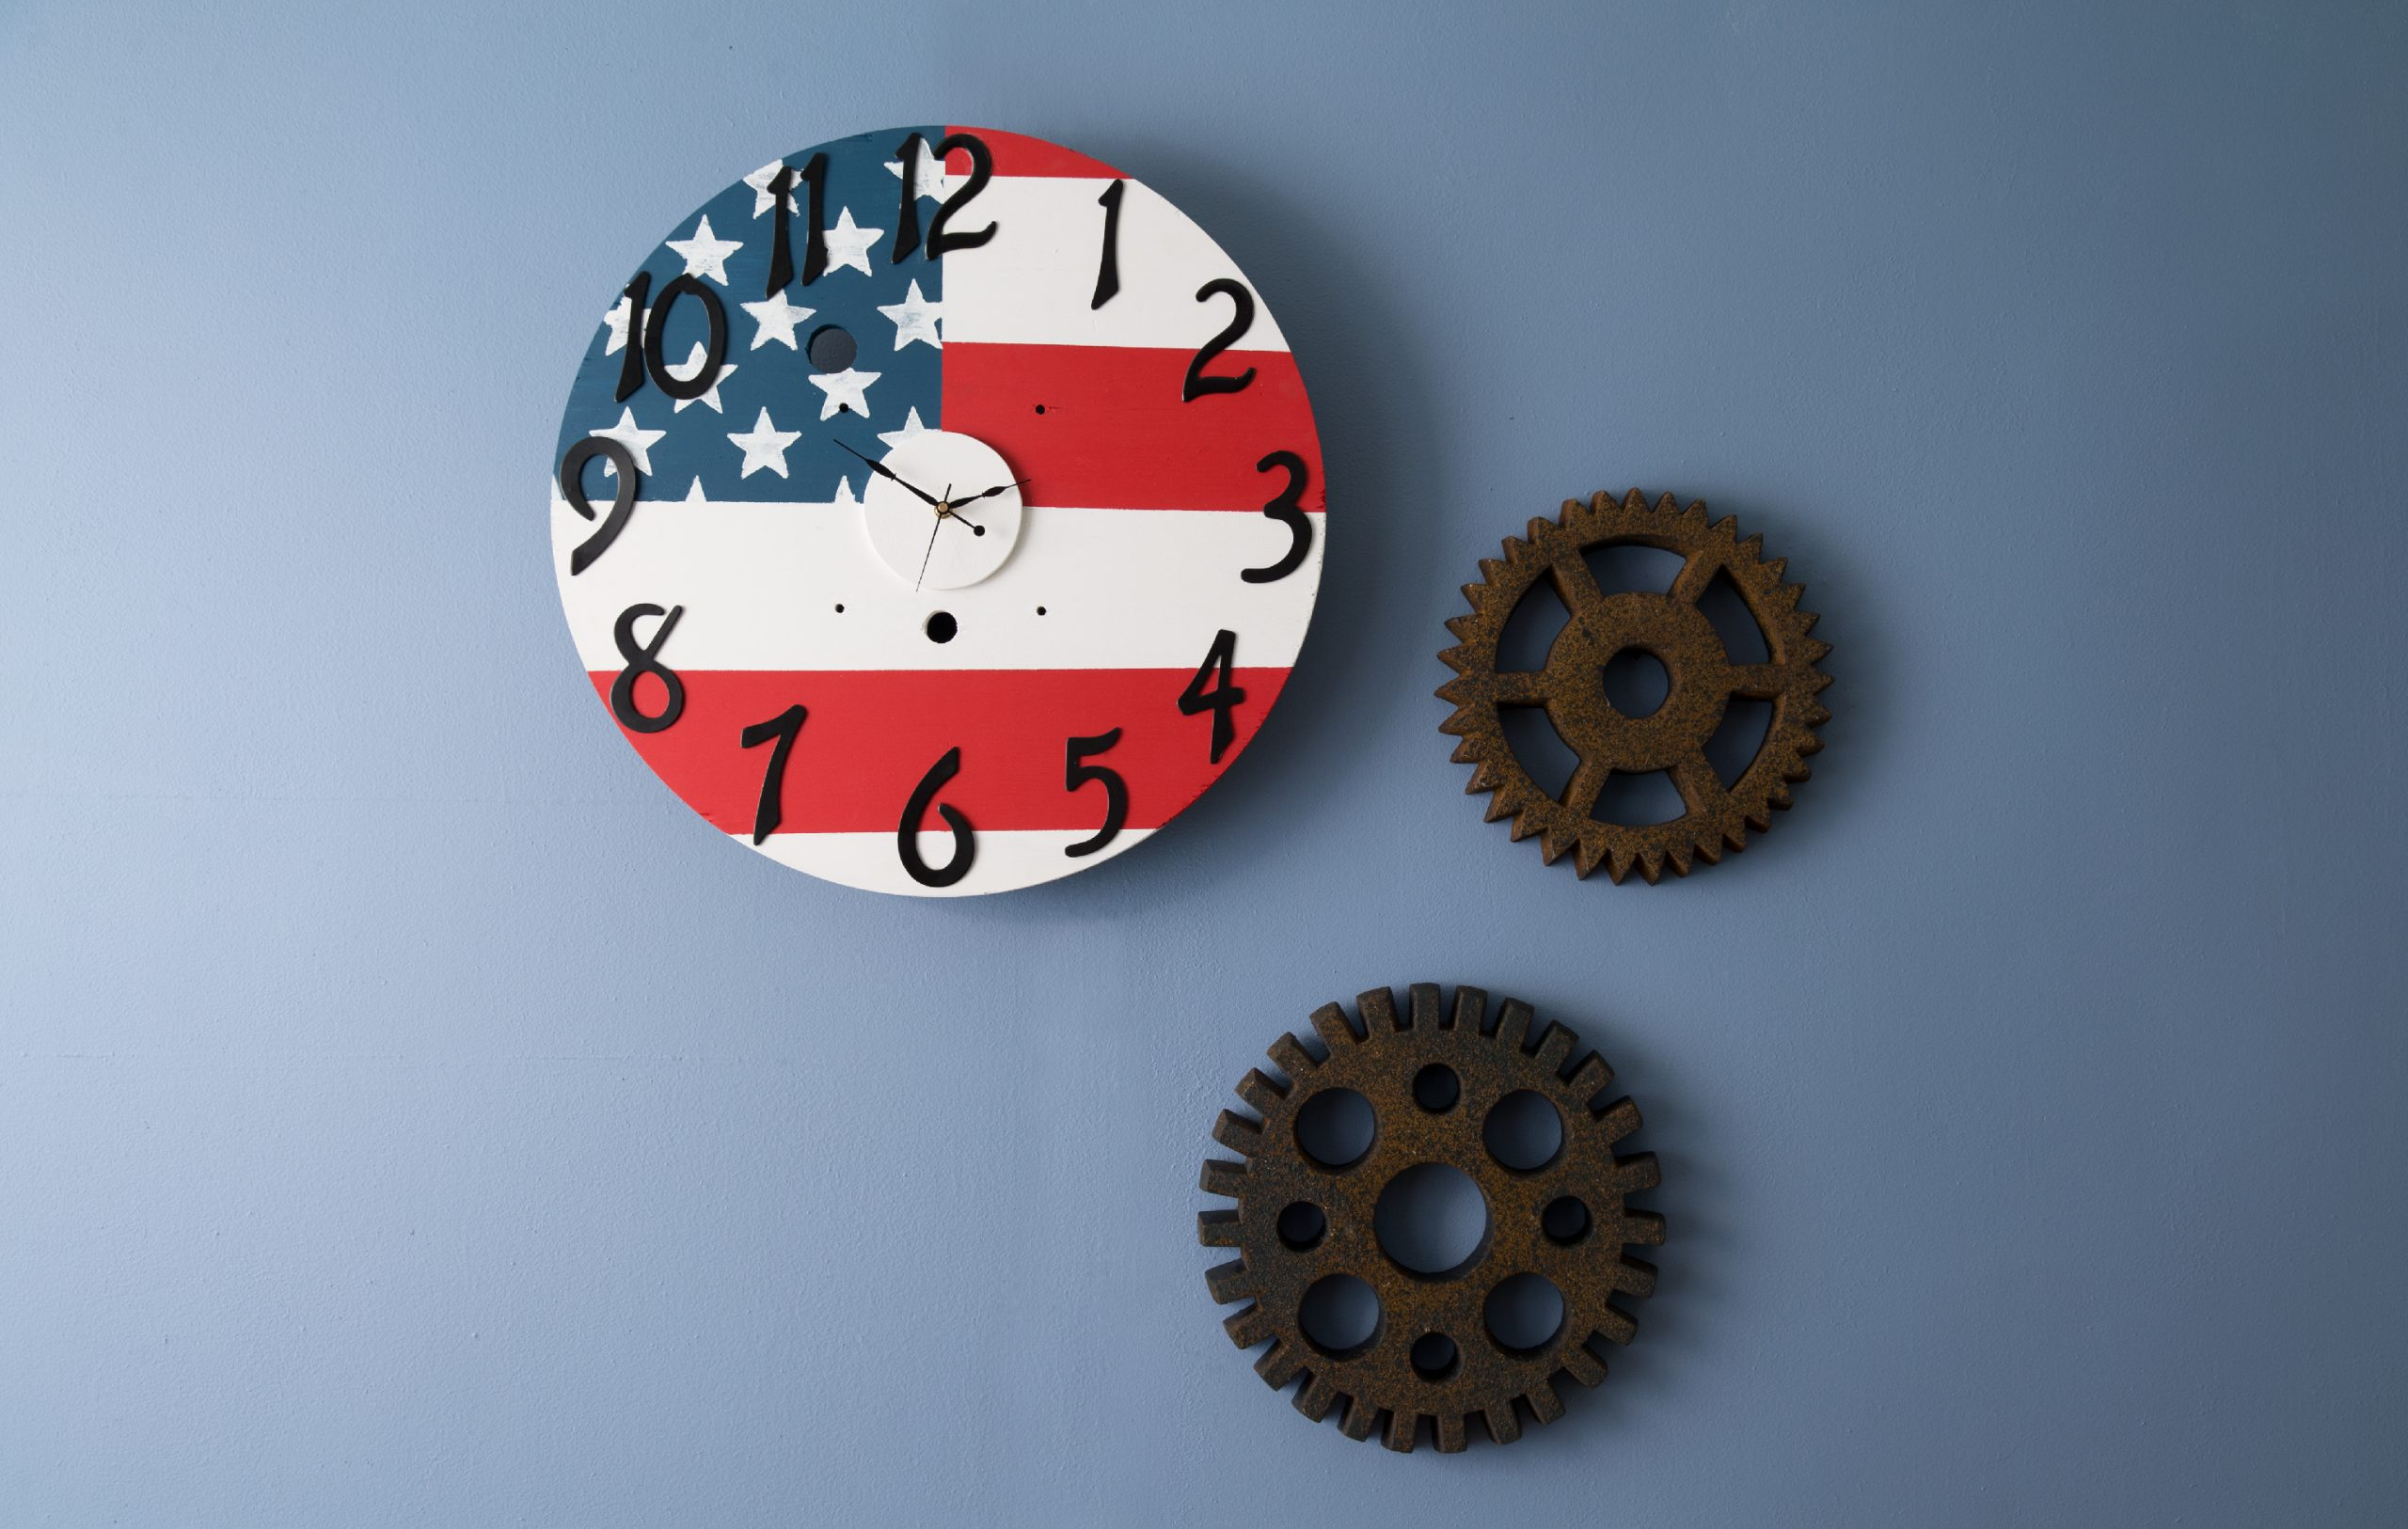 A clock hanging on a blue wall. The clock is painted to look like the patriotic flag.